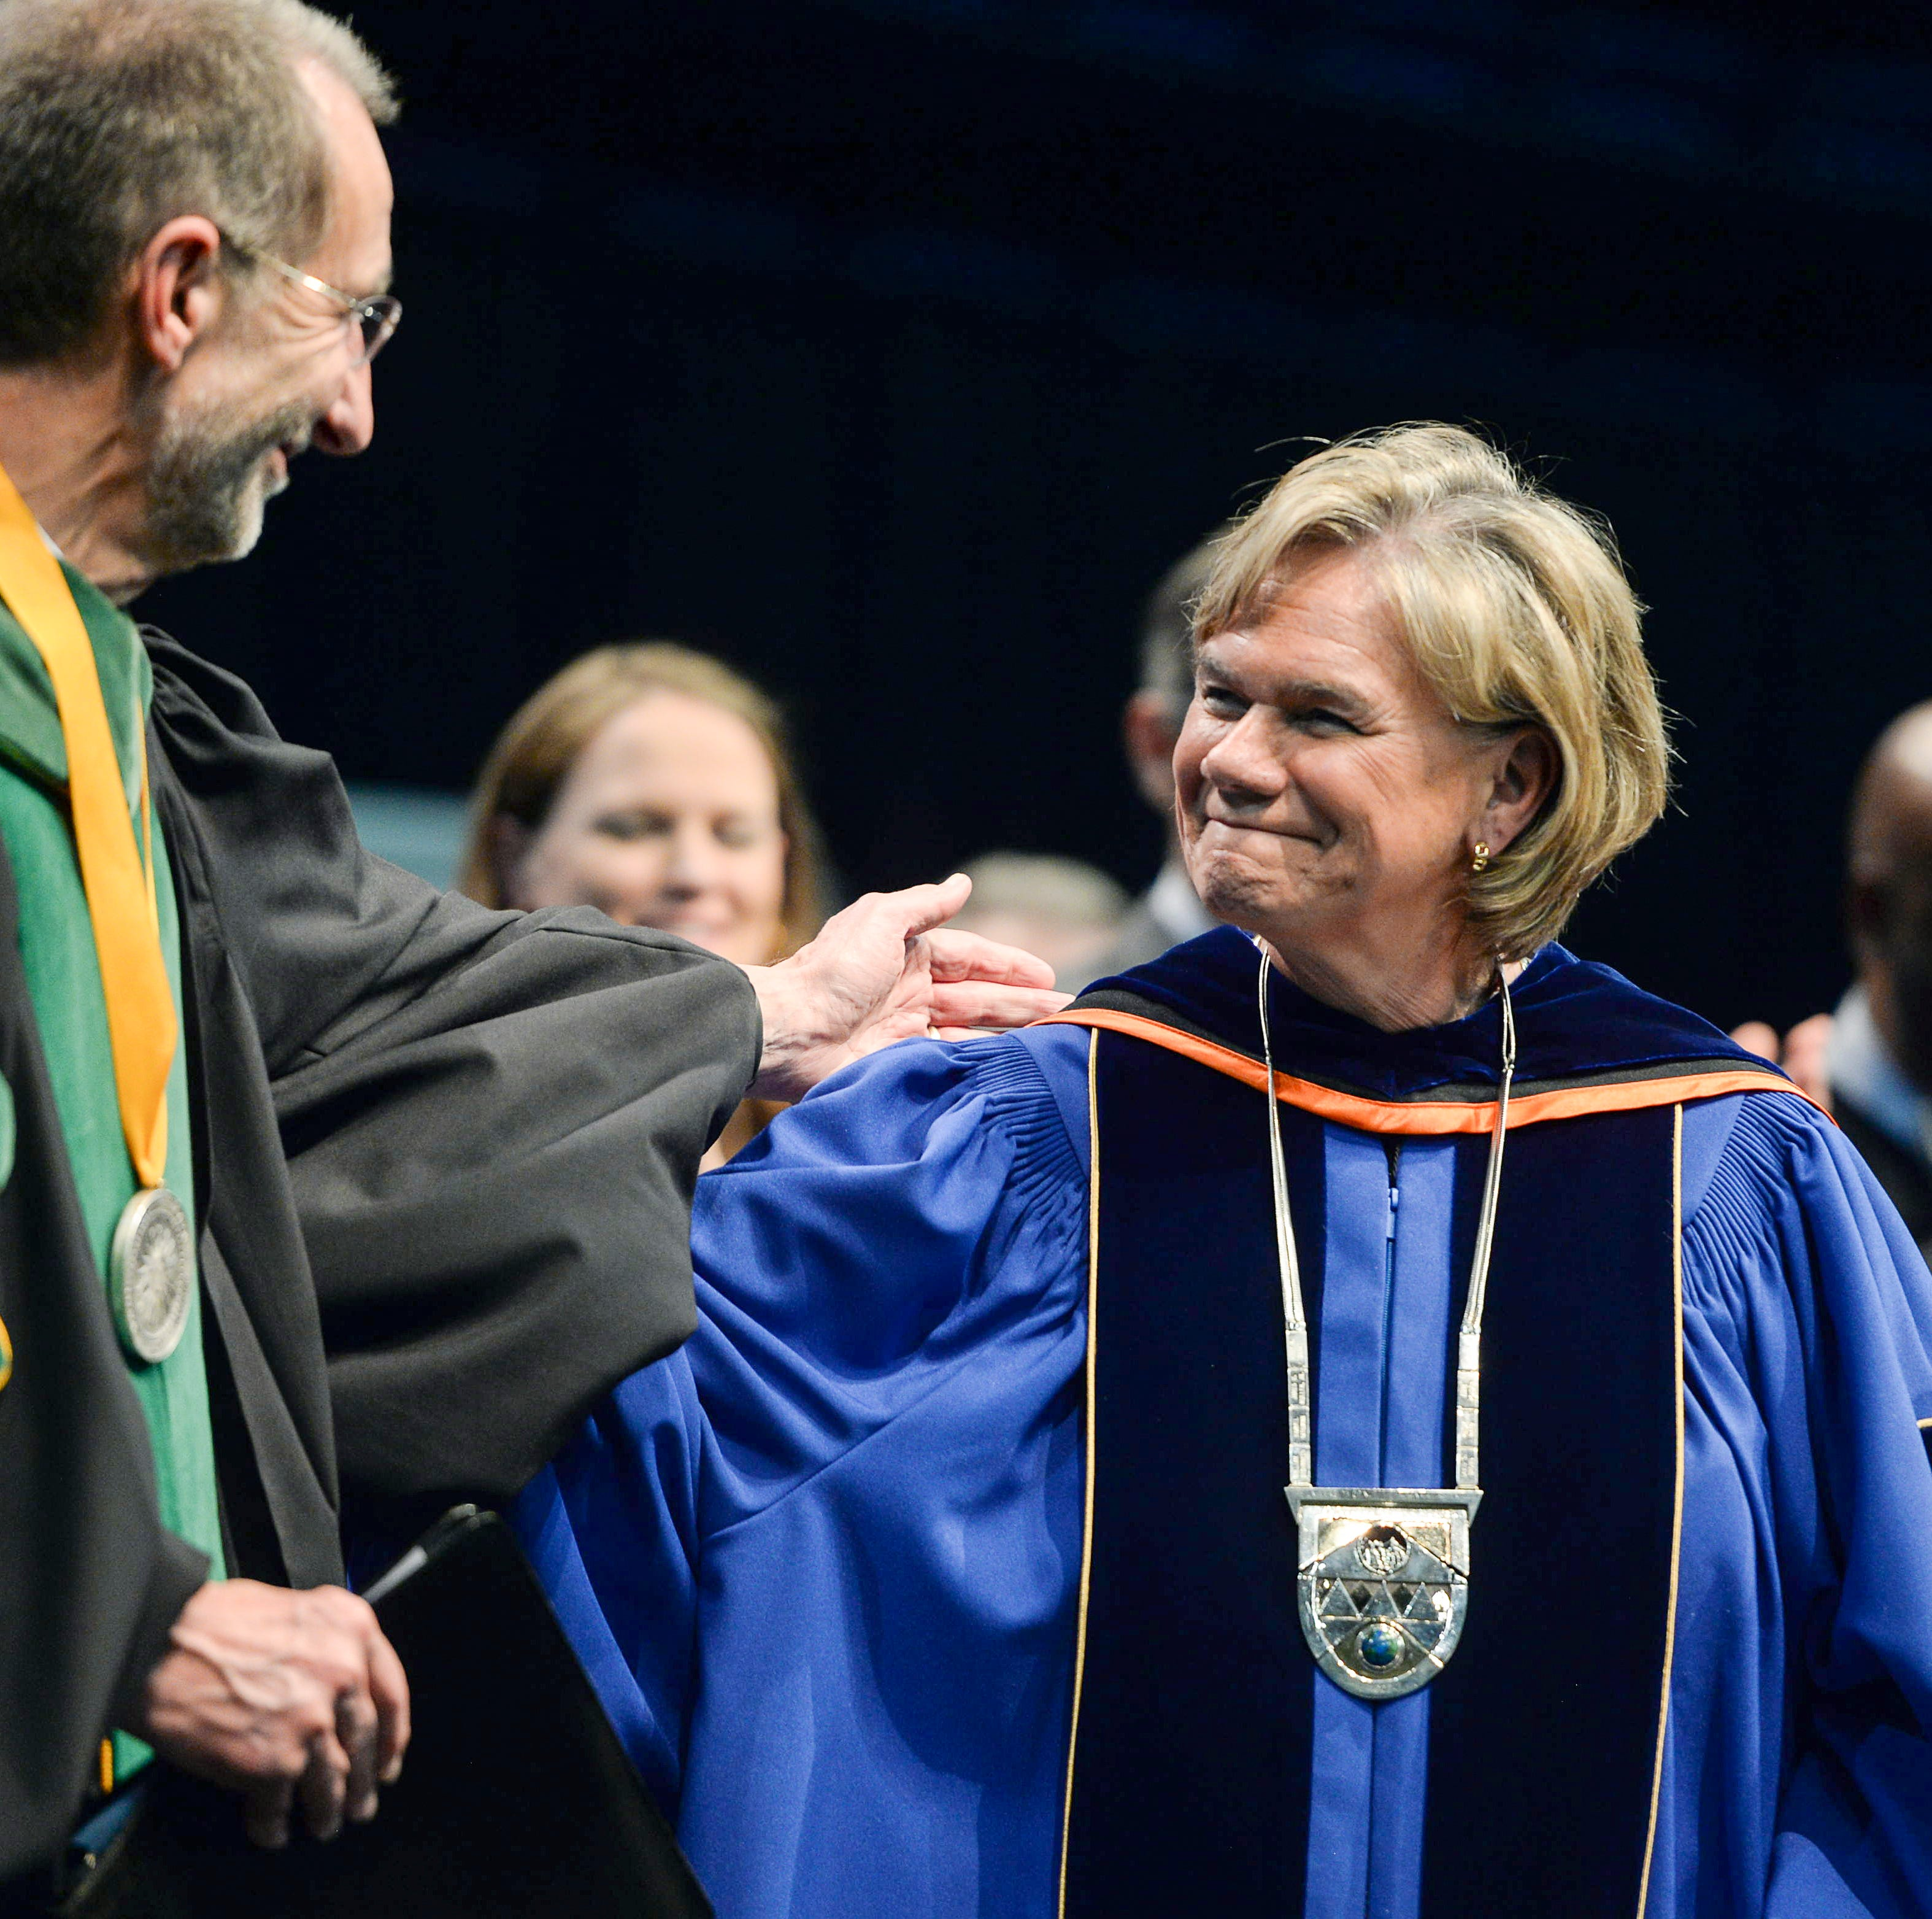 Nancy J. Cable installed as UNCA's eighth chancellor